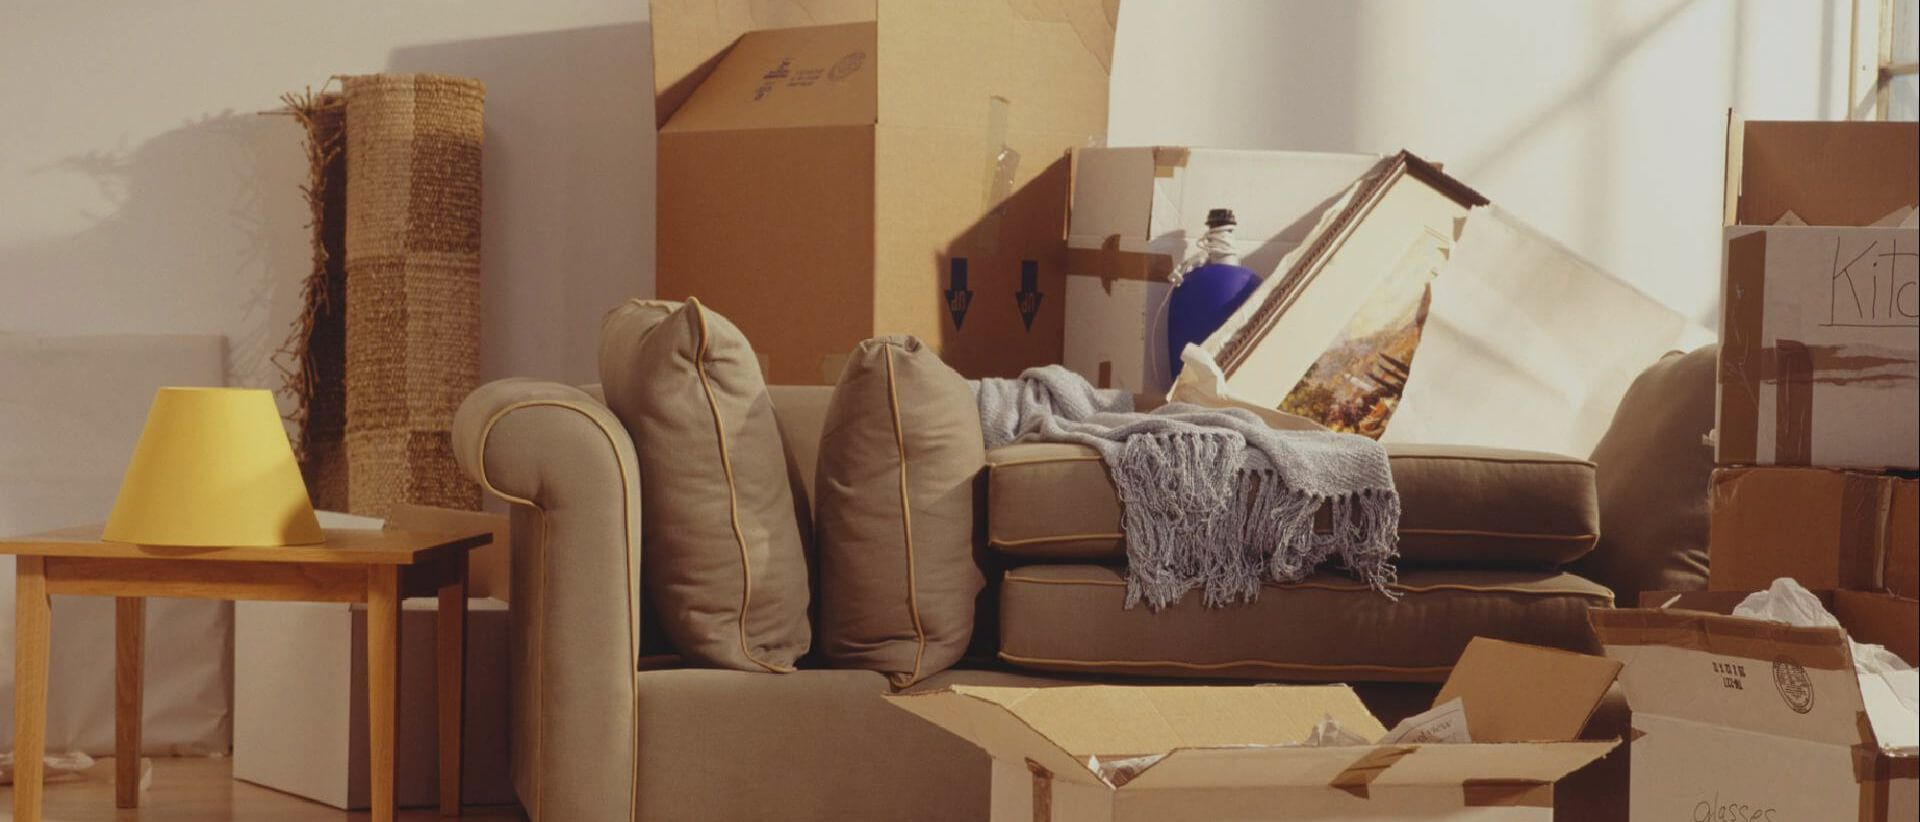 Ending a Lease or Residency? Here's What You Need To Do While Moving Out